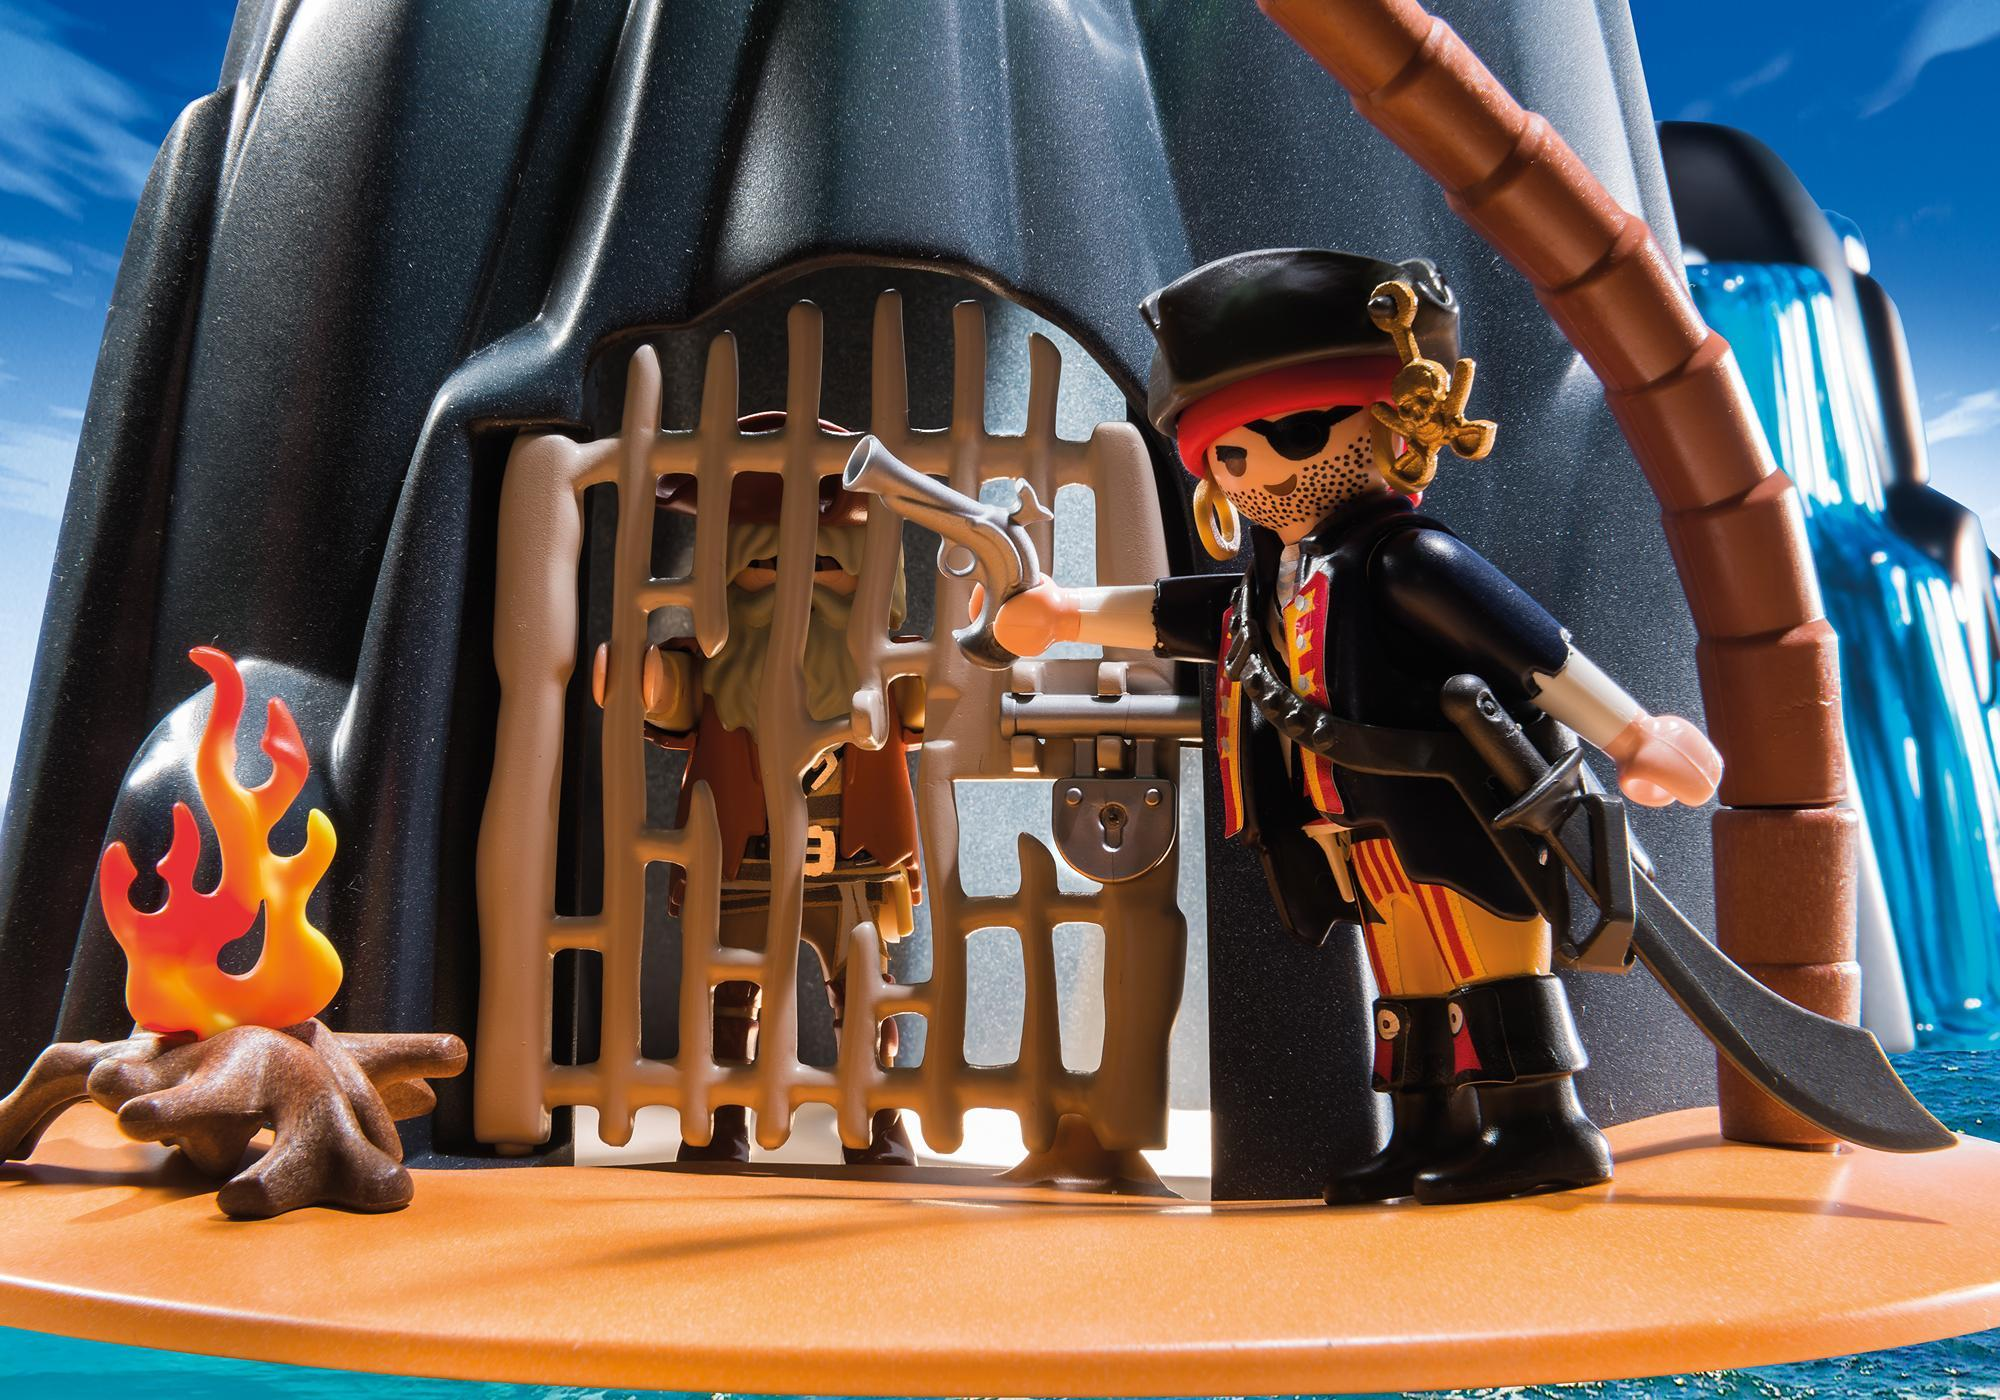 http://media.playmobil.com/i/playmobil/6679_product_extra3/Πειρατικό νησί θησαυρού